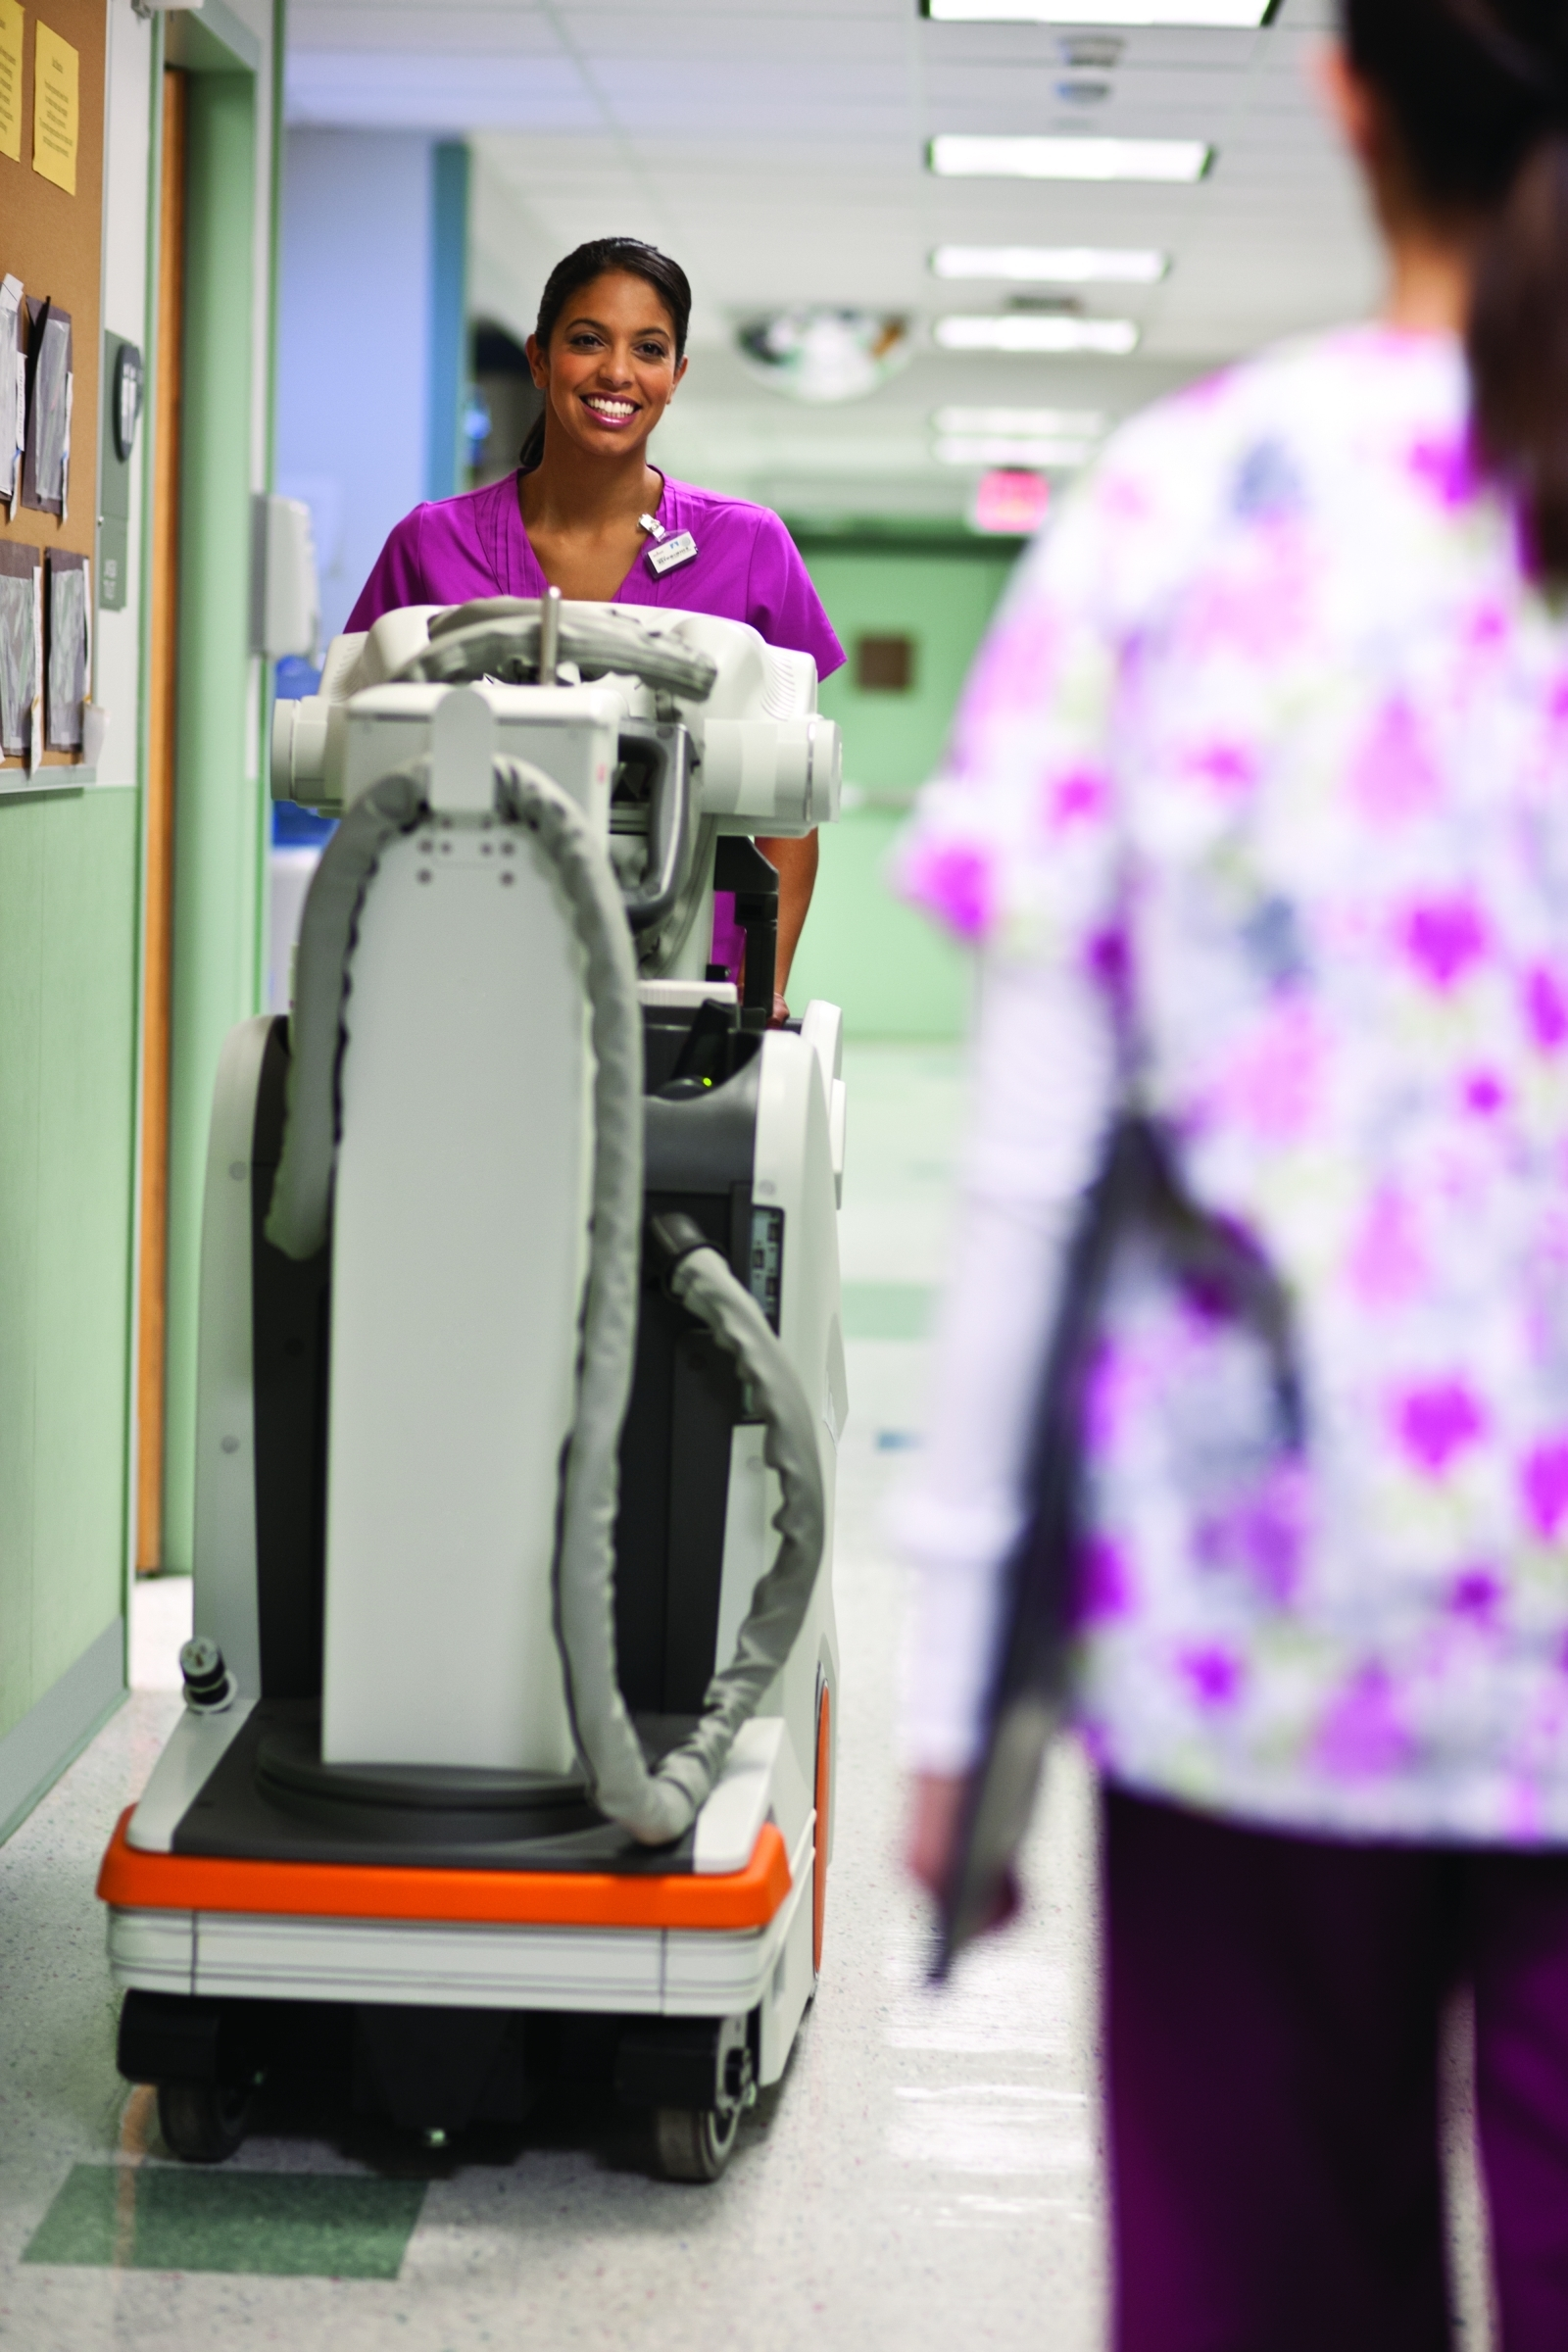 The CARESTREAM DRX-Revolution Mobile X-ray System features a small footprint, exceptional maneuverability, and an easy-to-use interface. (Photo: Business Wire)